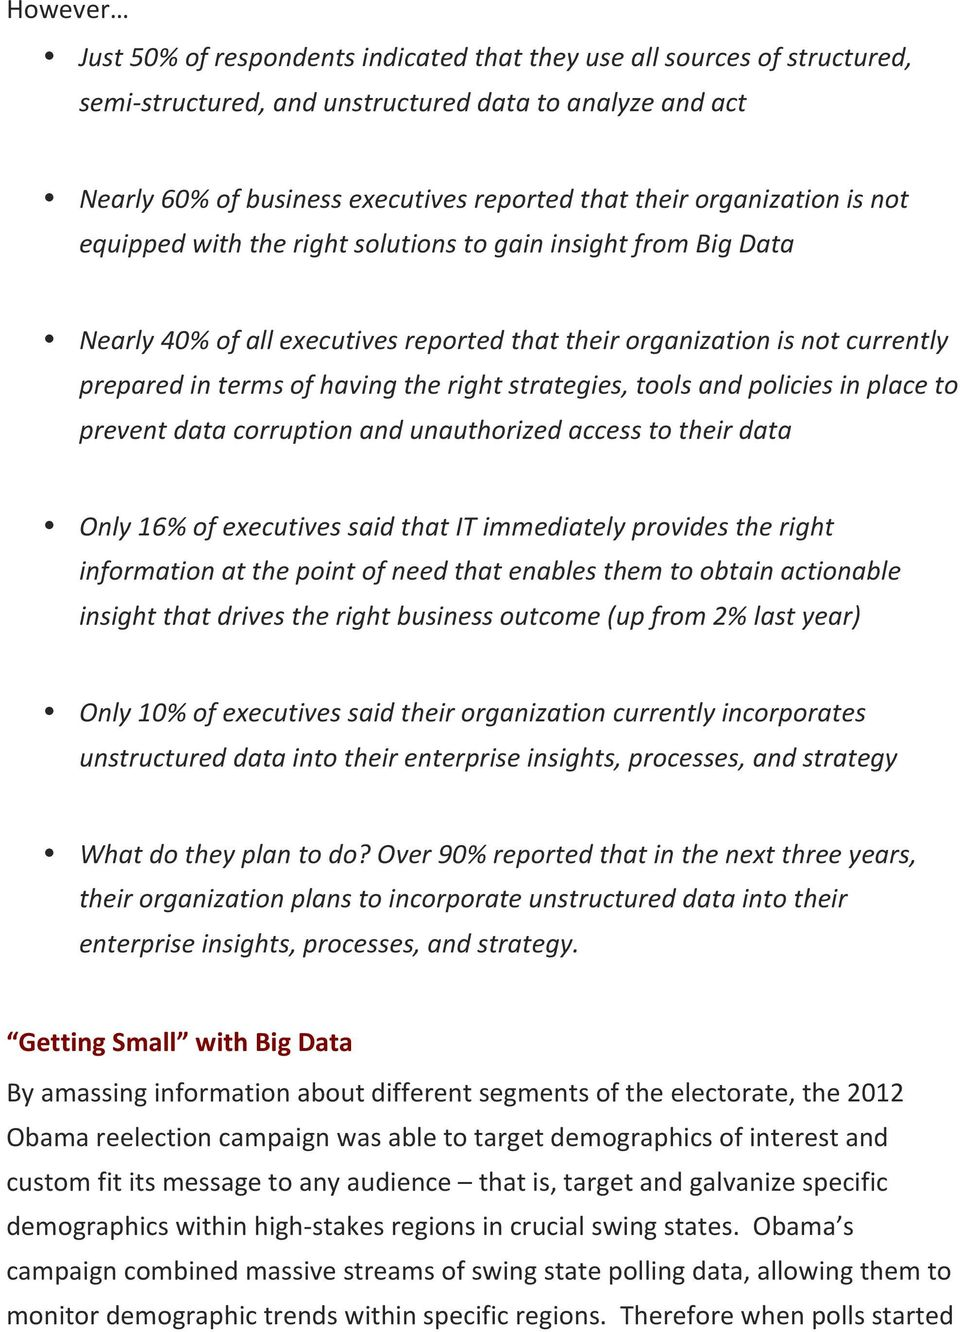 right strategies, tools and policies in place to prevent data corruption and unauthorized access to their data Only 16% of executives said that IT immediately provides the right information at the